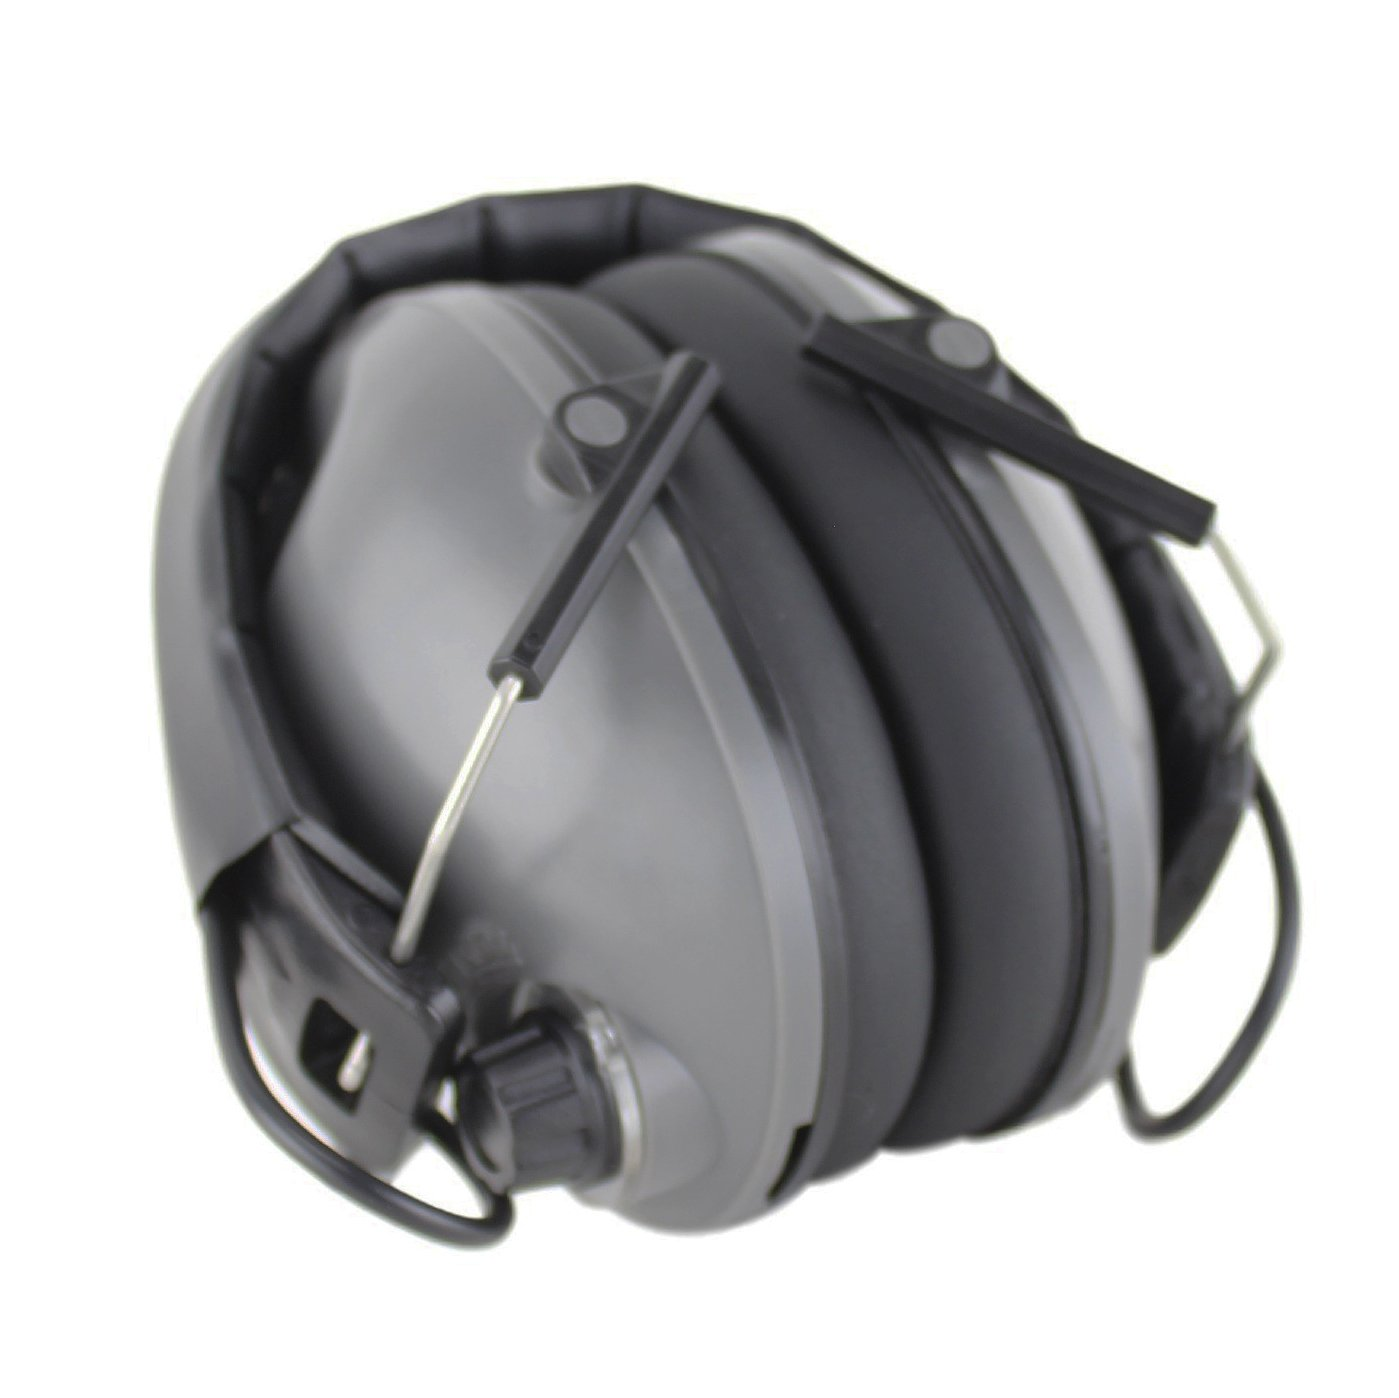 Titus E-Series - Low-Profile - Electronic Noise Cancelling Safety Earmuffs - Hearing Protection (Standard) by Titus (Image #2)